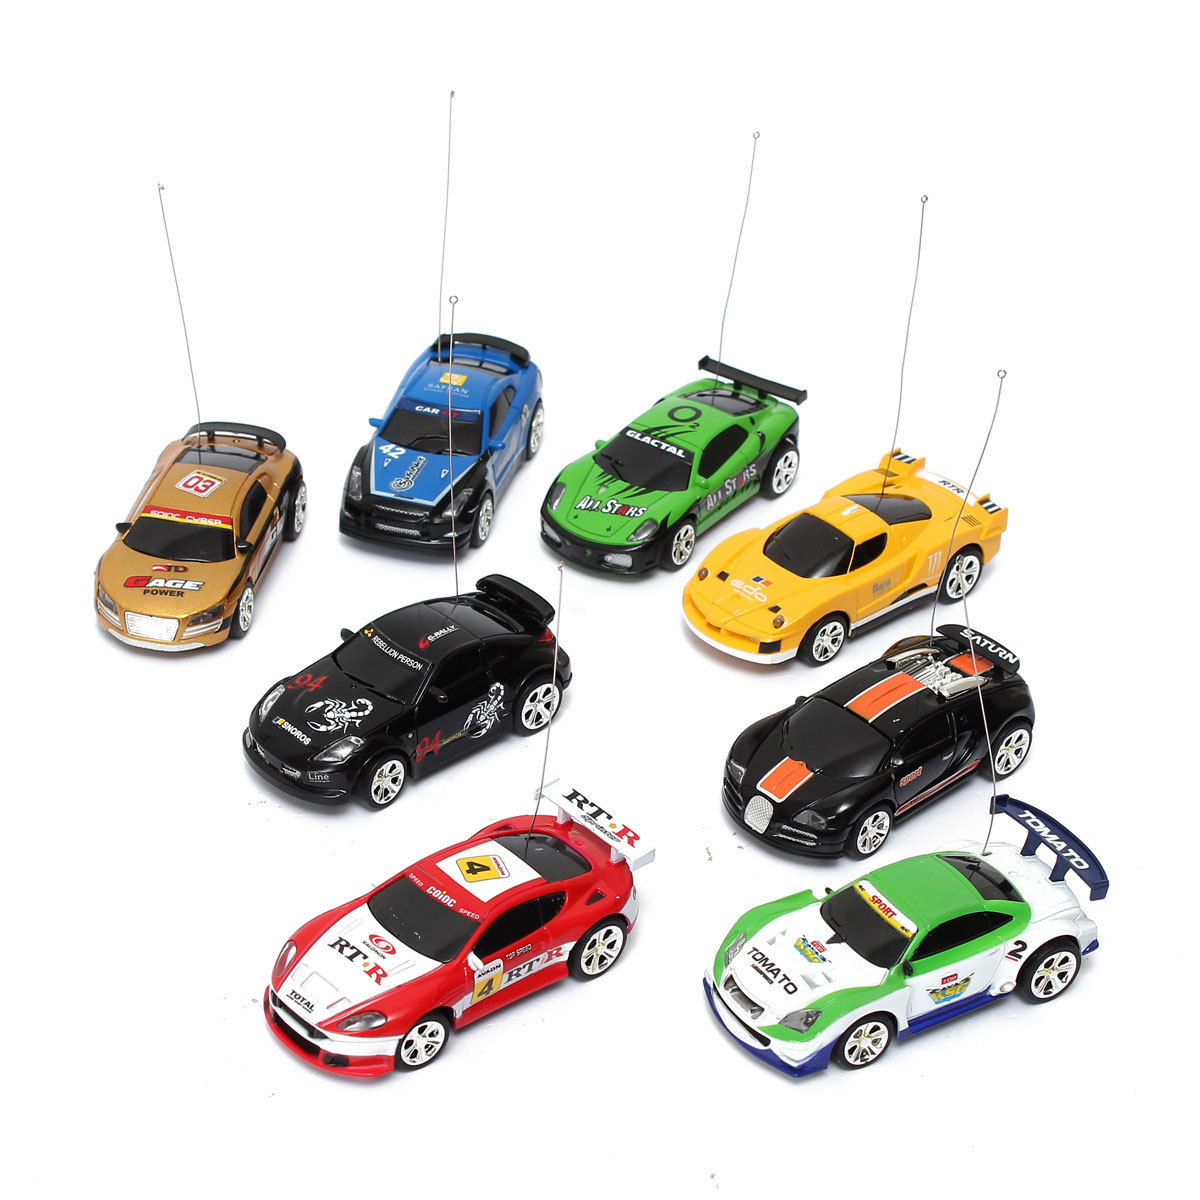 mini koks funk fernbedienung rc micro racing auto geburtstag geschenk spiel v1n4 ebay. Black Bedroom Furniture Sets. Home Design Ideas